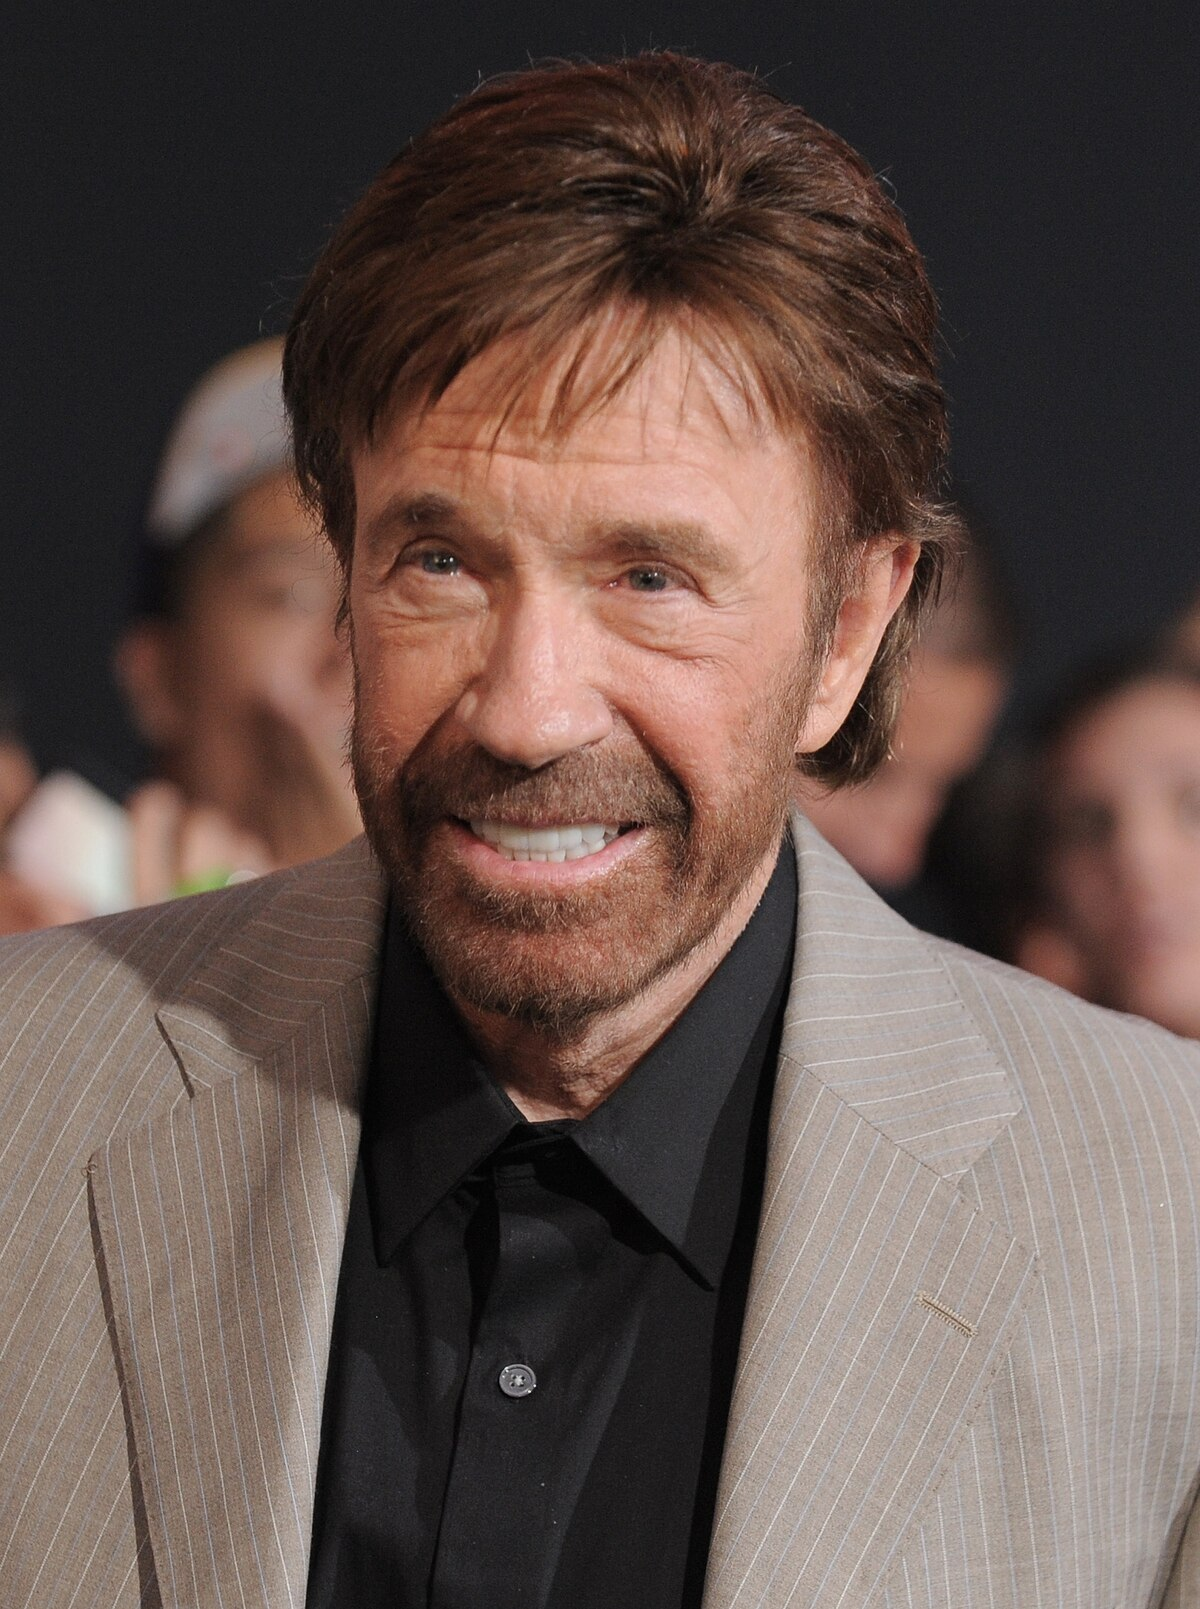 Chuck Norris American Actor, Author, Producer, Screenwriter